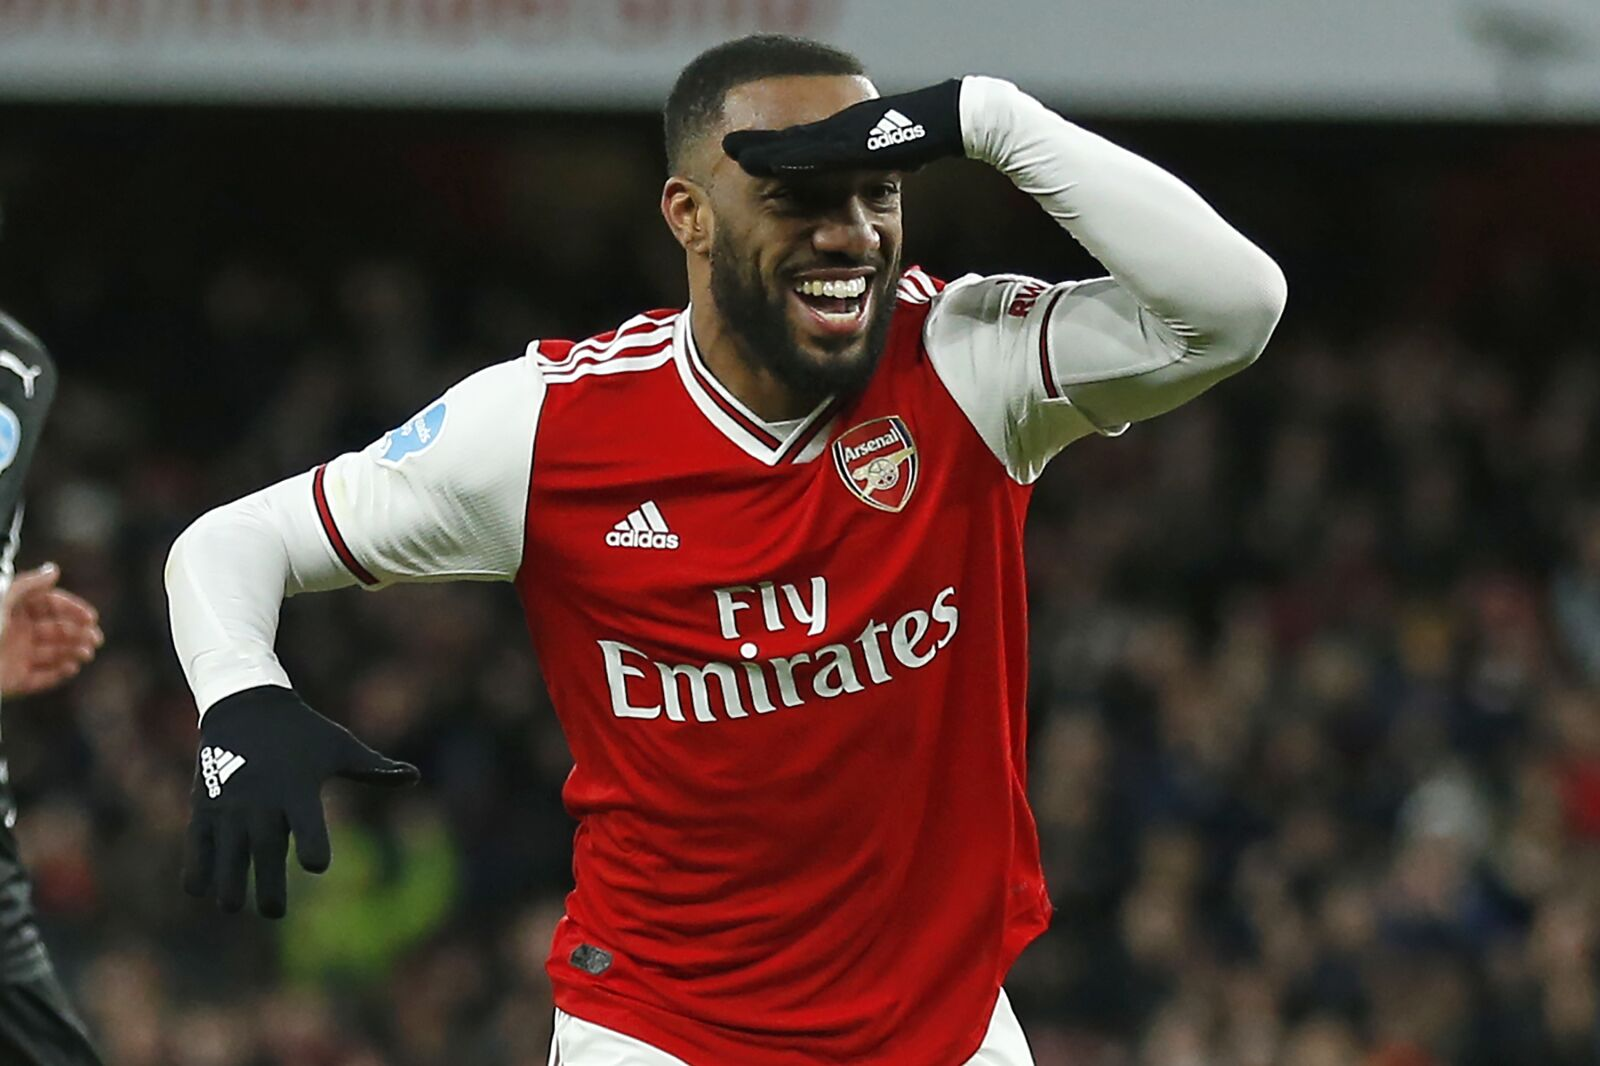 Arsenal and Alexandre Lacazette: Return to form?